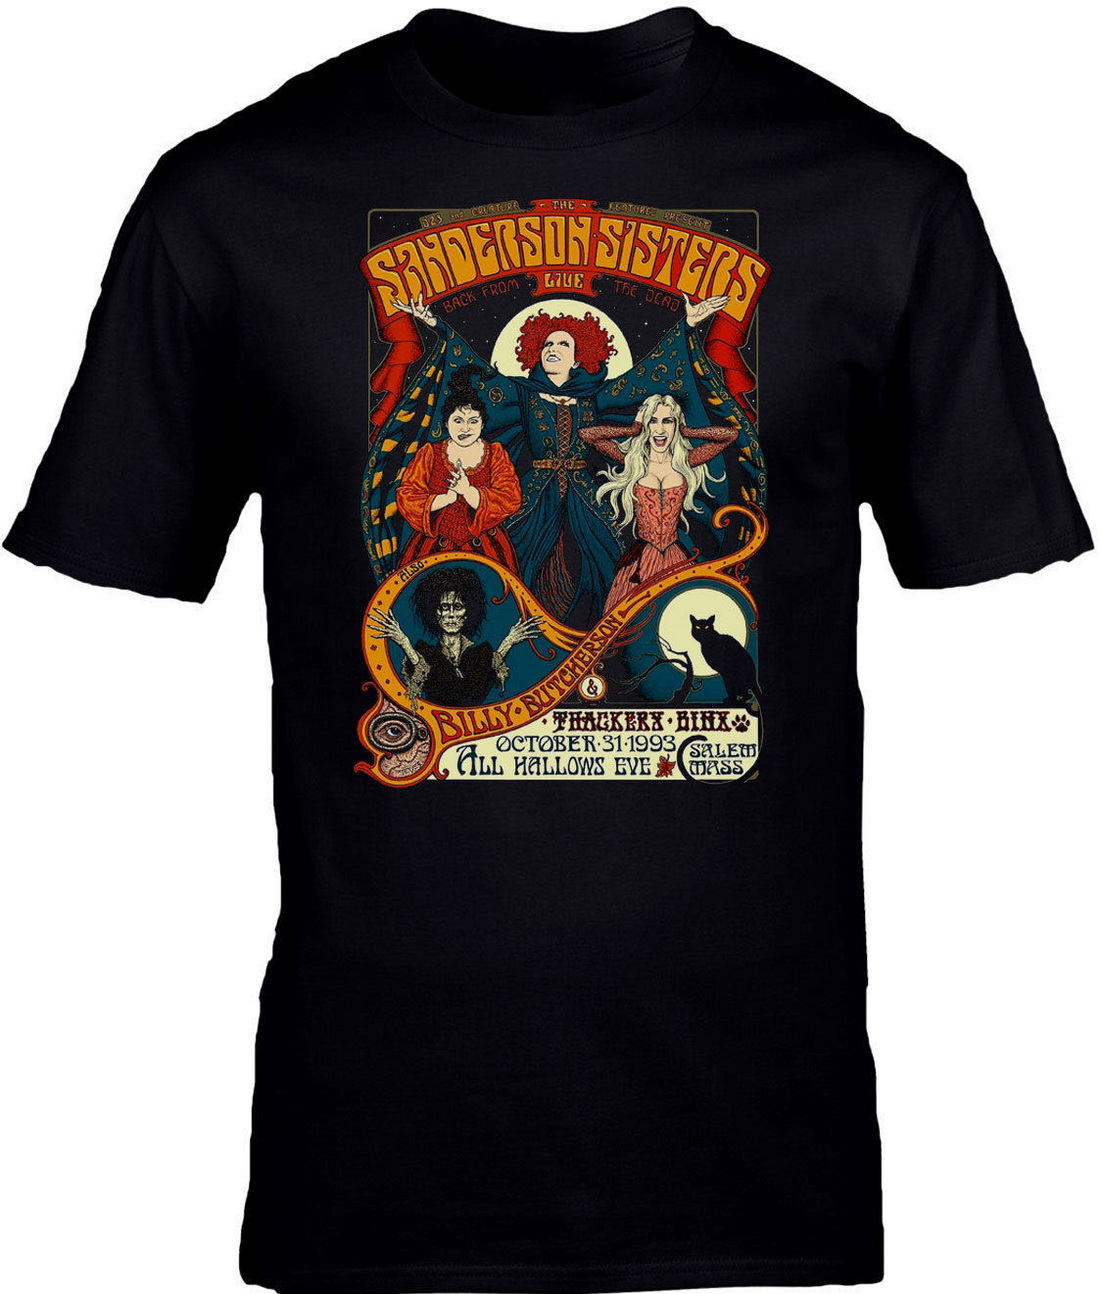 Halloween <font><b>Sanderson</b></font> <font><b>Sisters</b></font> <font><b>Hocus</b></font> <font><b>Pocus</b></font> Movie Inspired Retro Unisex Tops Tee T Shirt Printing Men Tops T-Shirt image